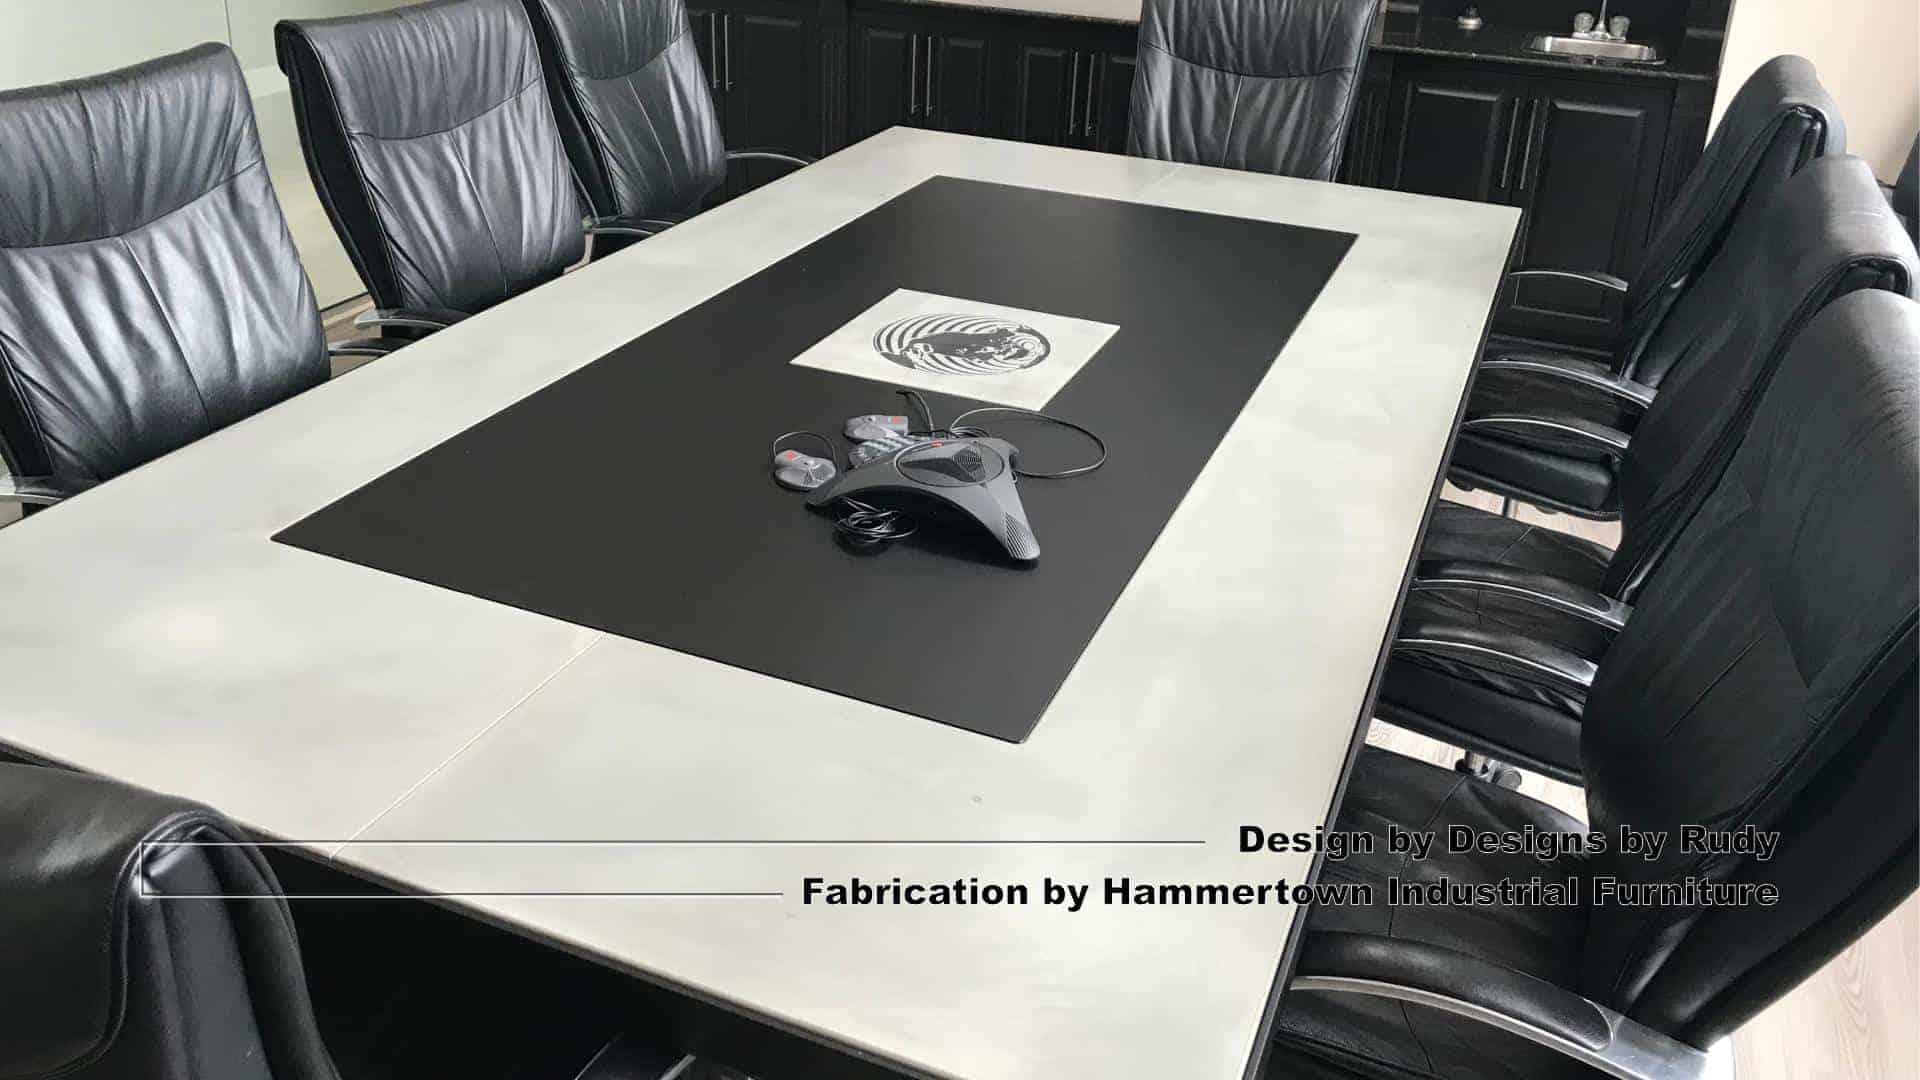 5 Concrete and steel boardroom table for NAC, Designs by Rudy, Hammertown Industrial Furniture, angle view